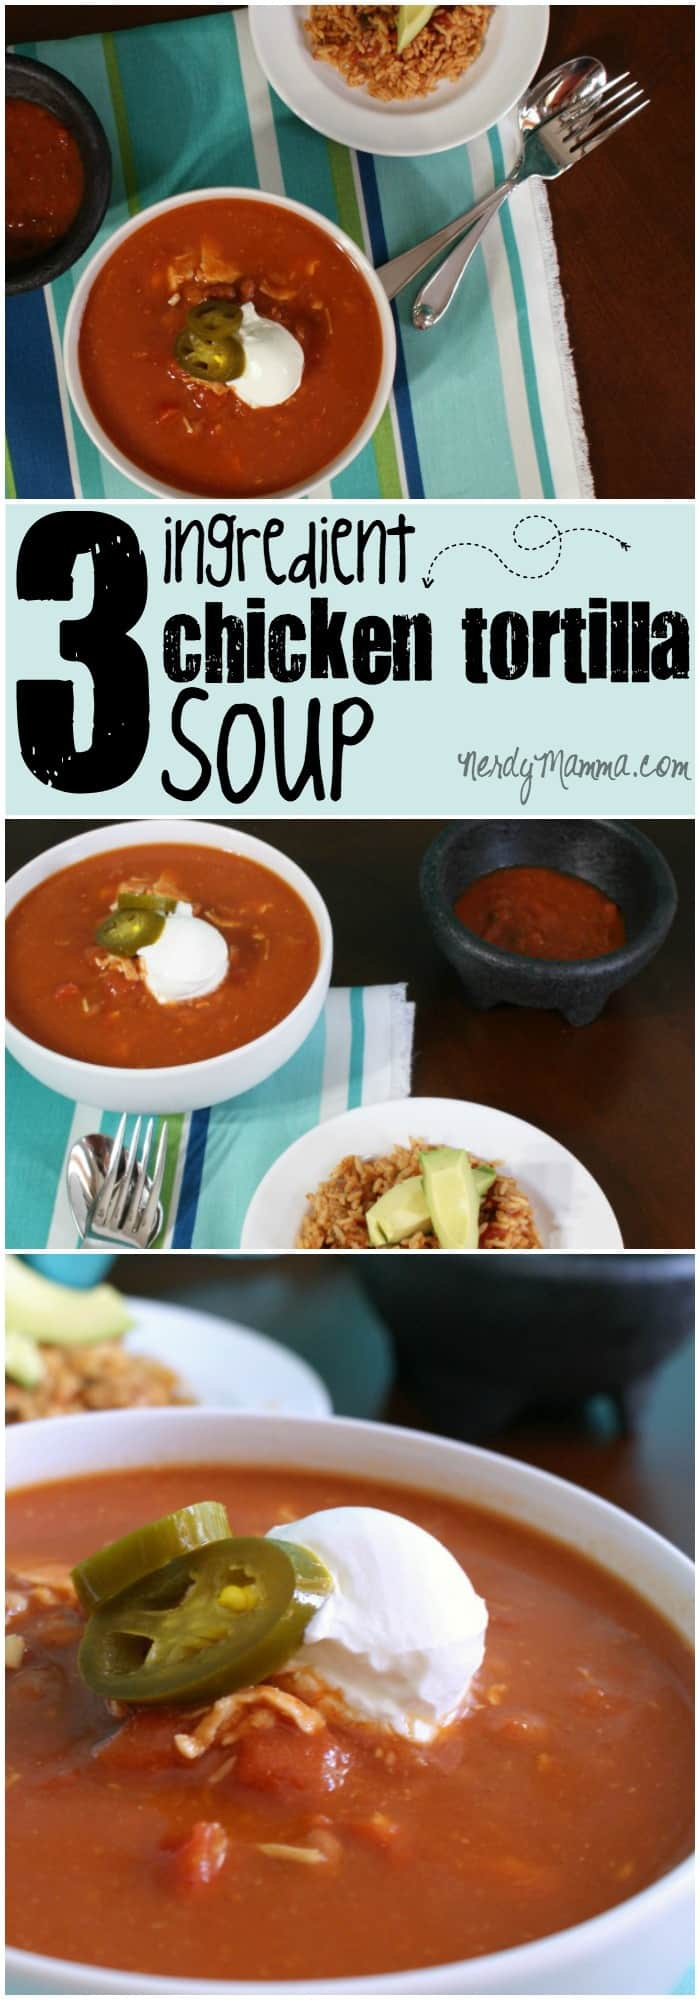 This recipe for chicken tortilla soup is so easy. It's only got 3 ingredients and it's together (and yummy) in about 5 minutes. Best. Dinner. Ever.